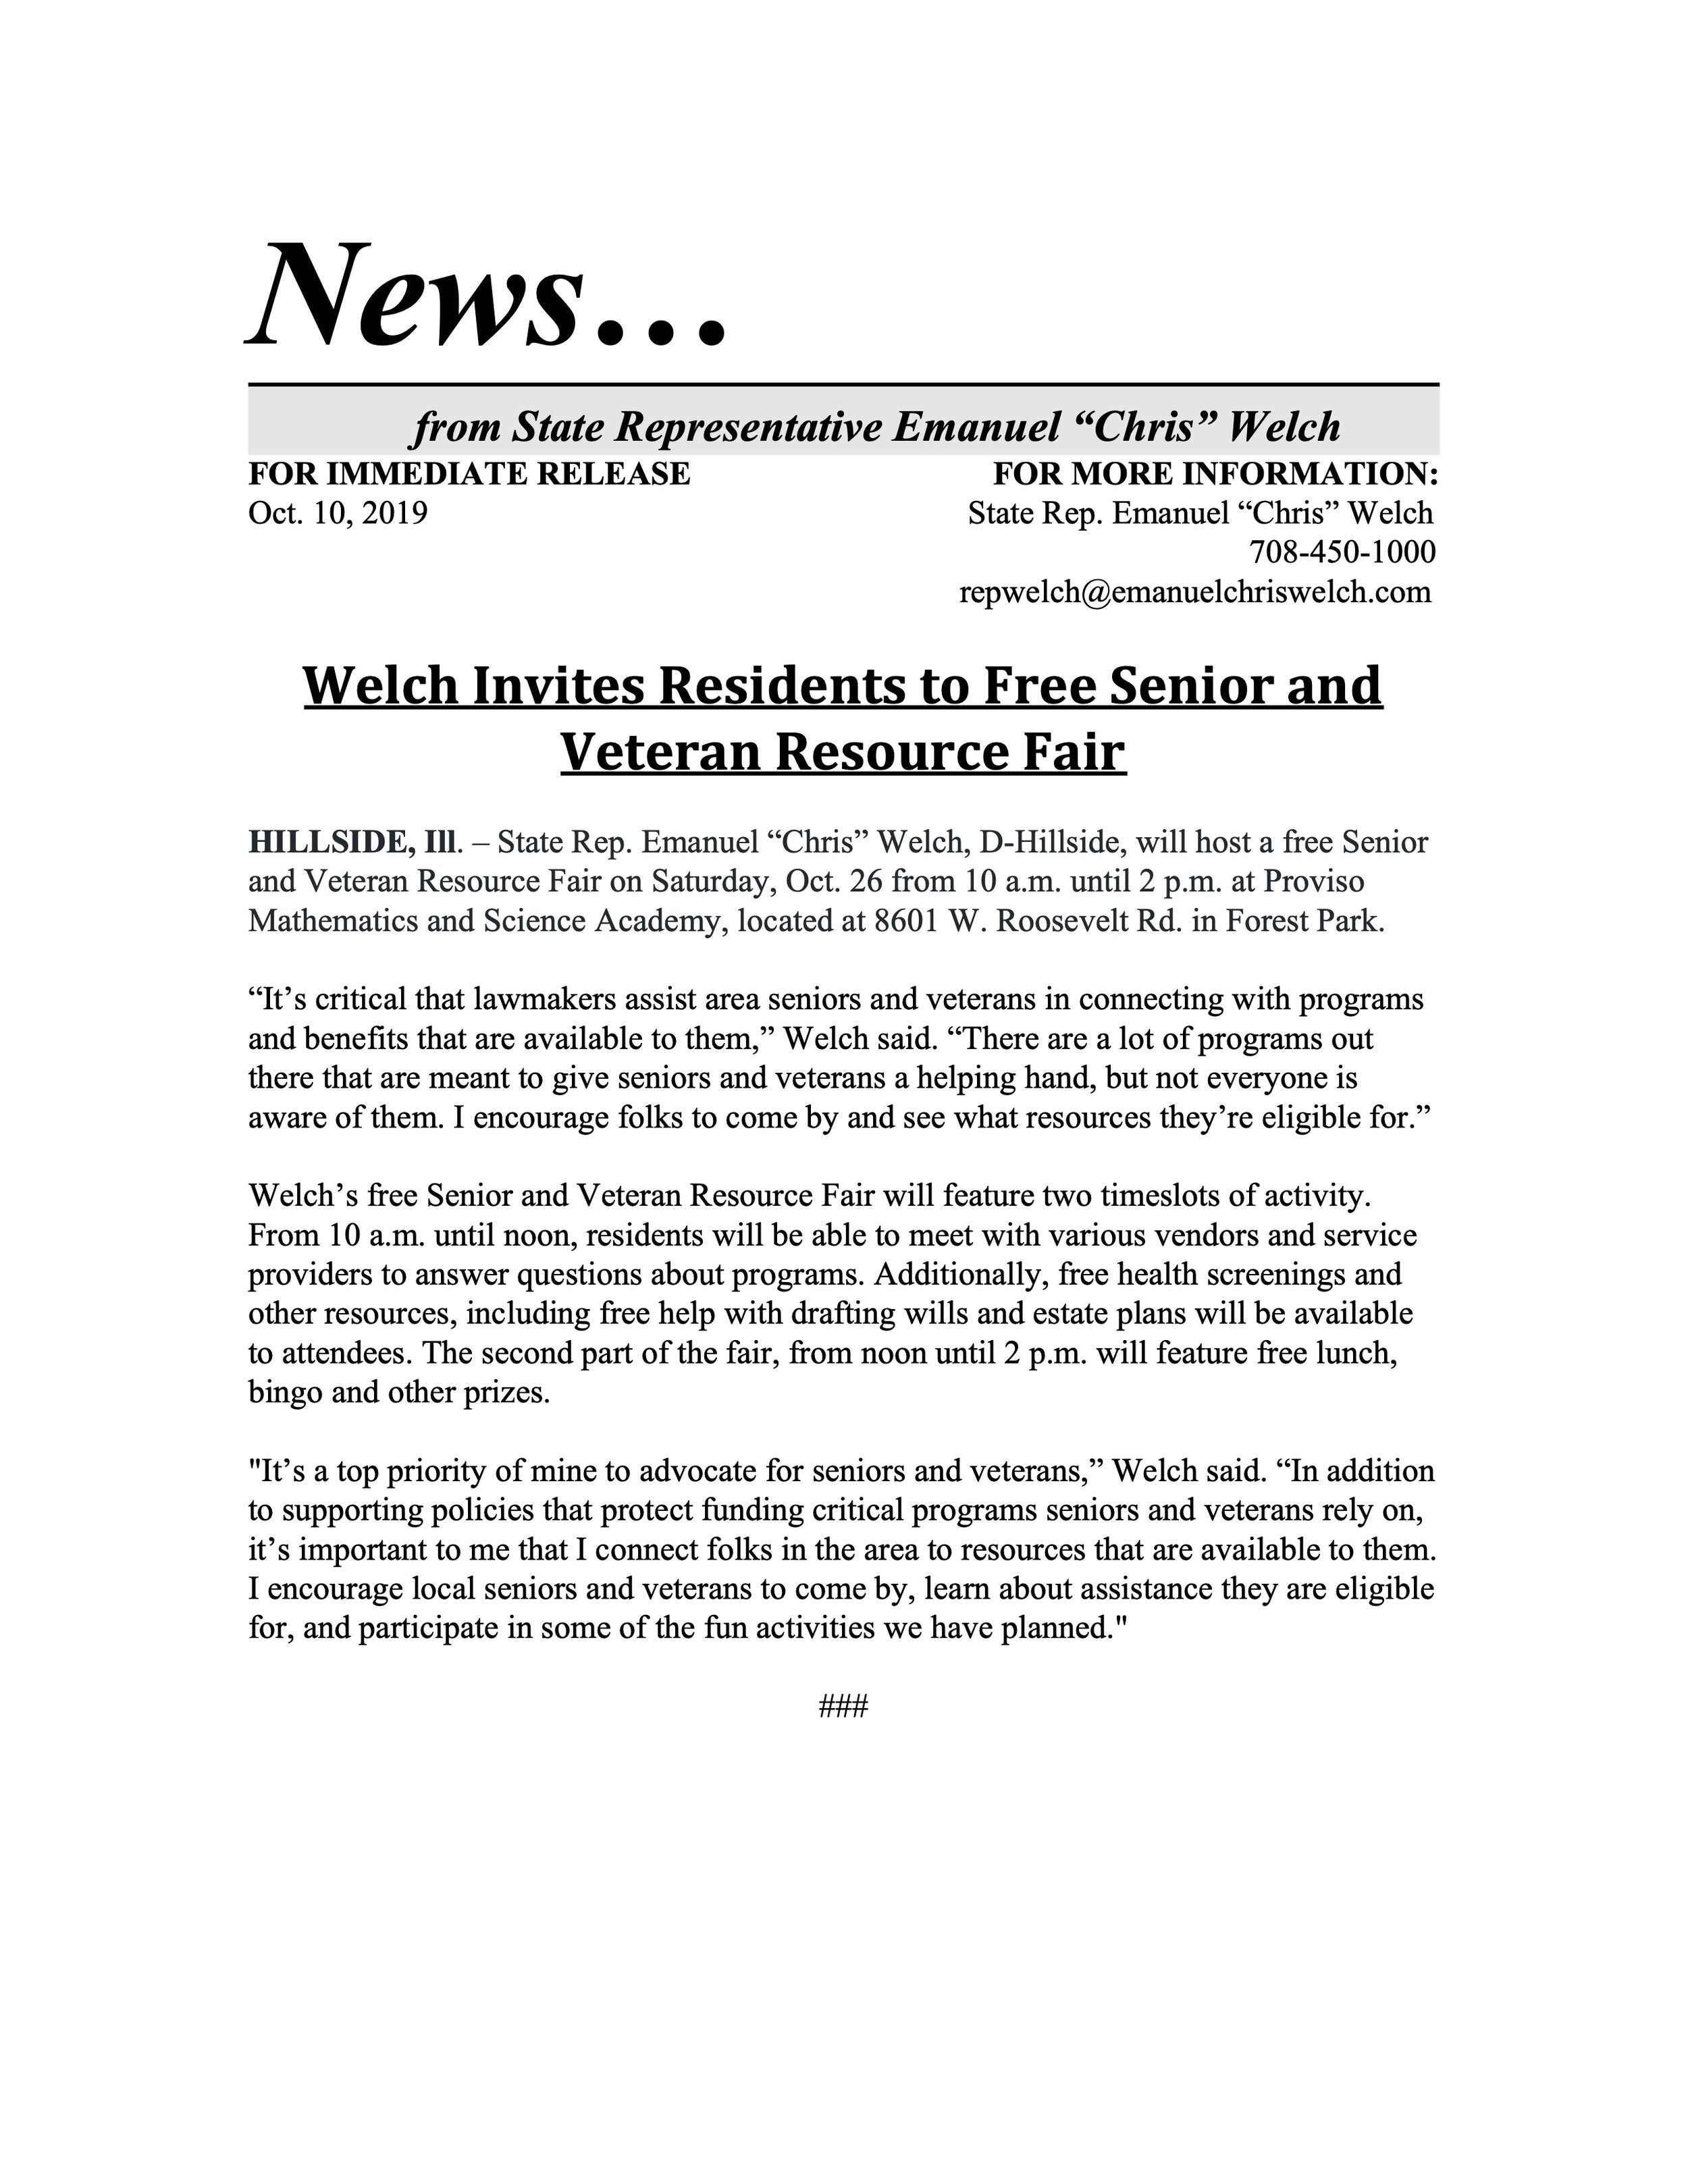 Welch Invites Residents to Free Senior and Veteran Resource Fair  (October 10, 2019)